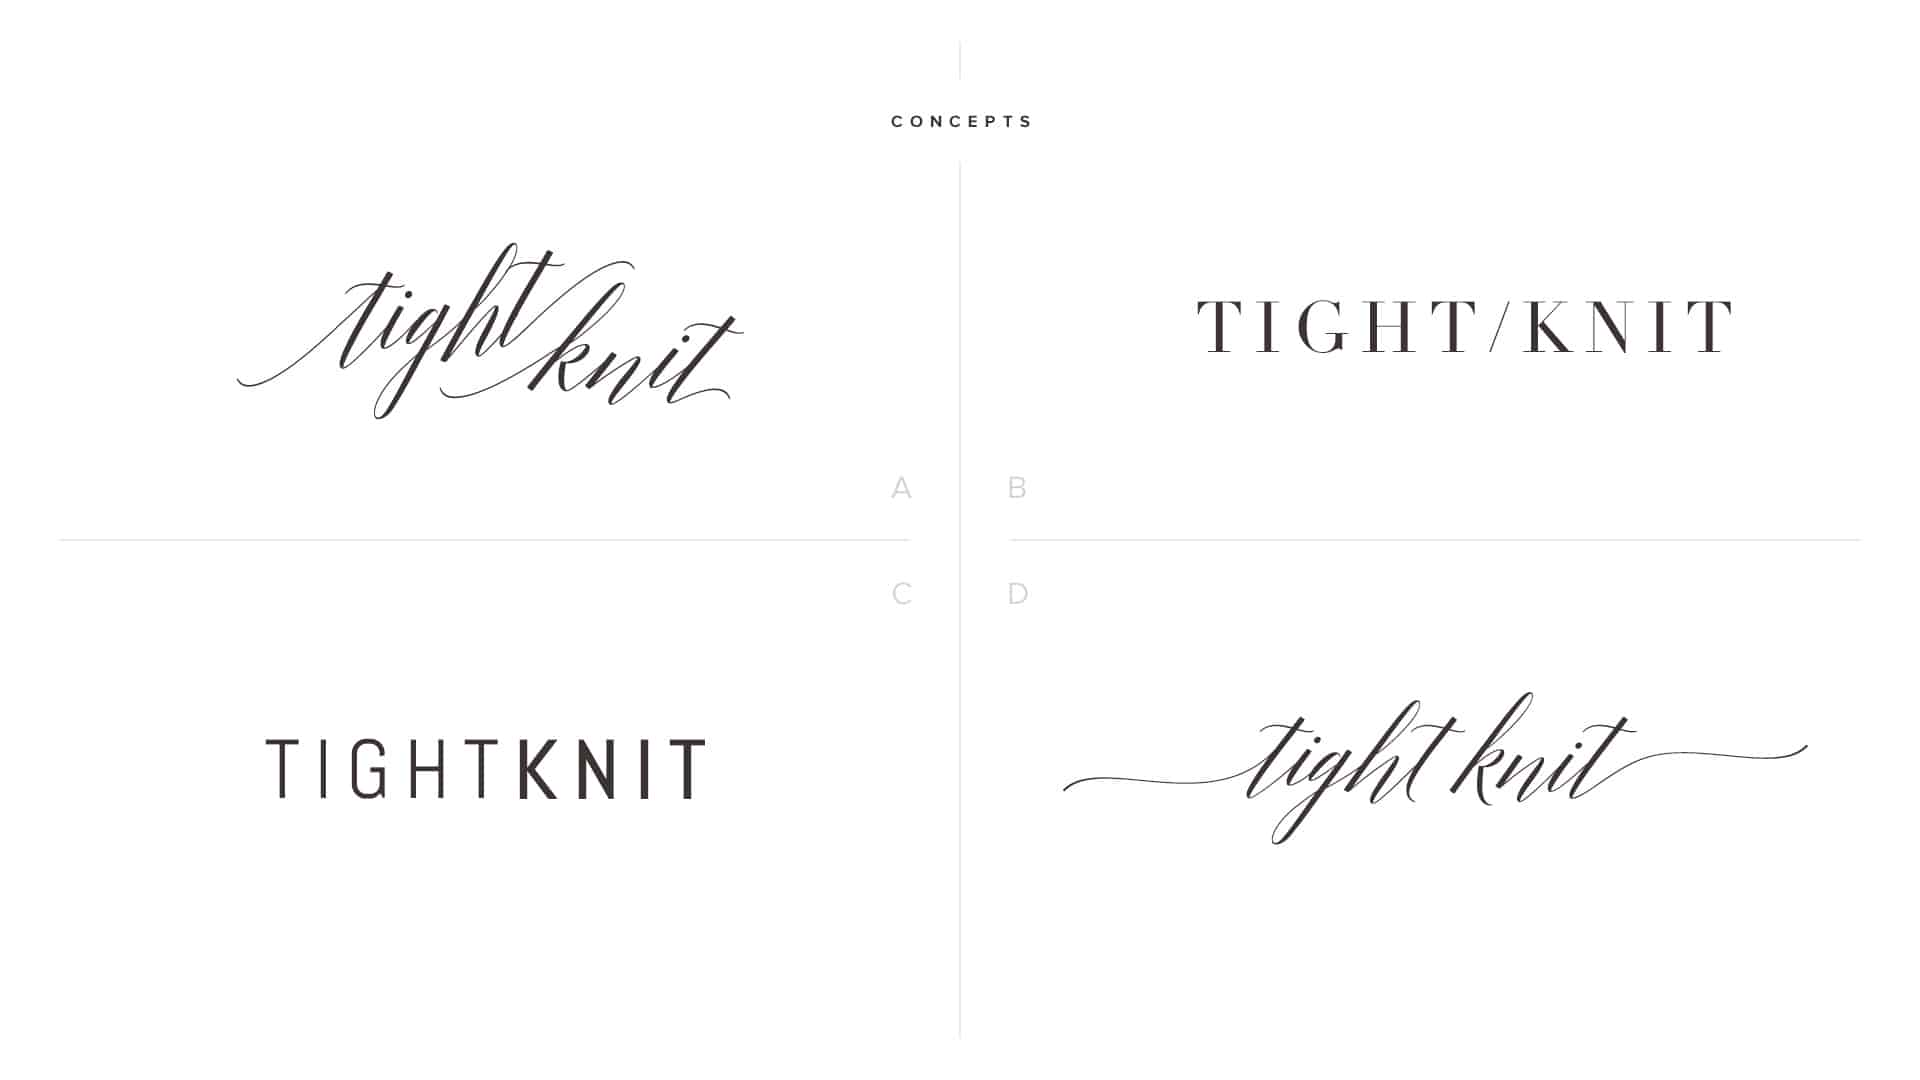 tightknit_concepts